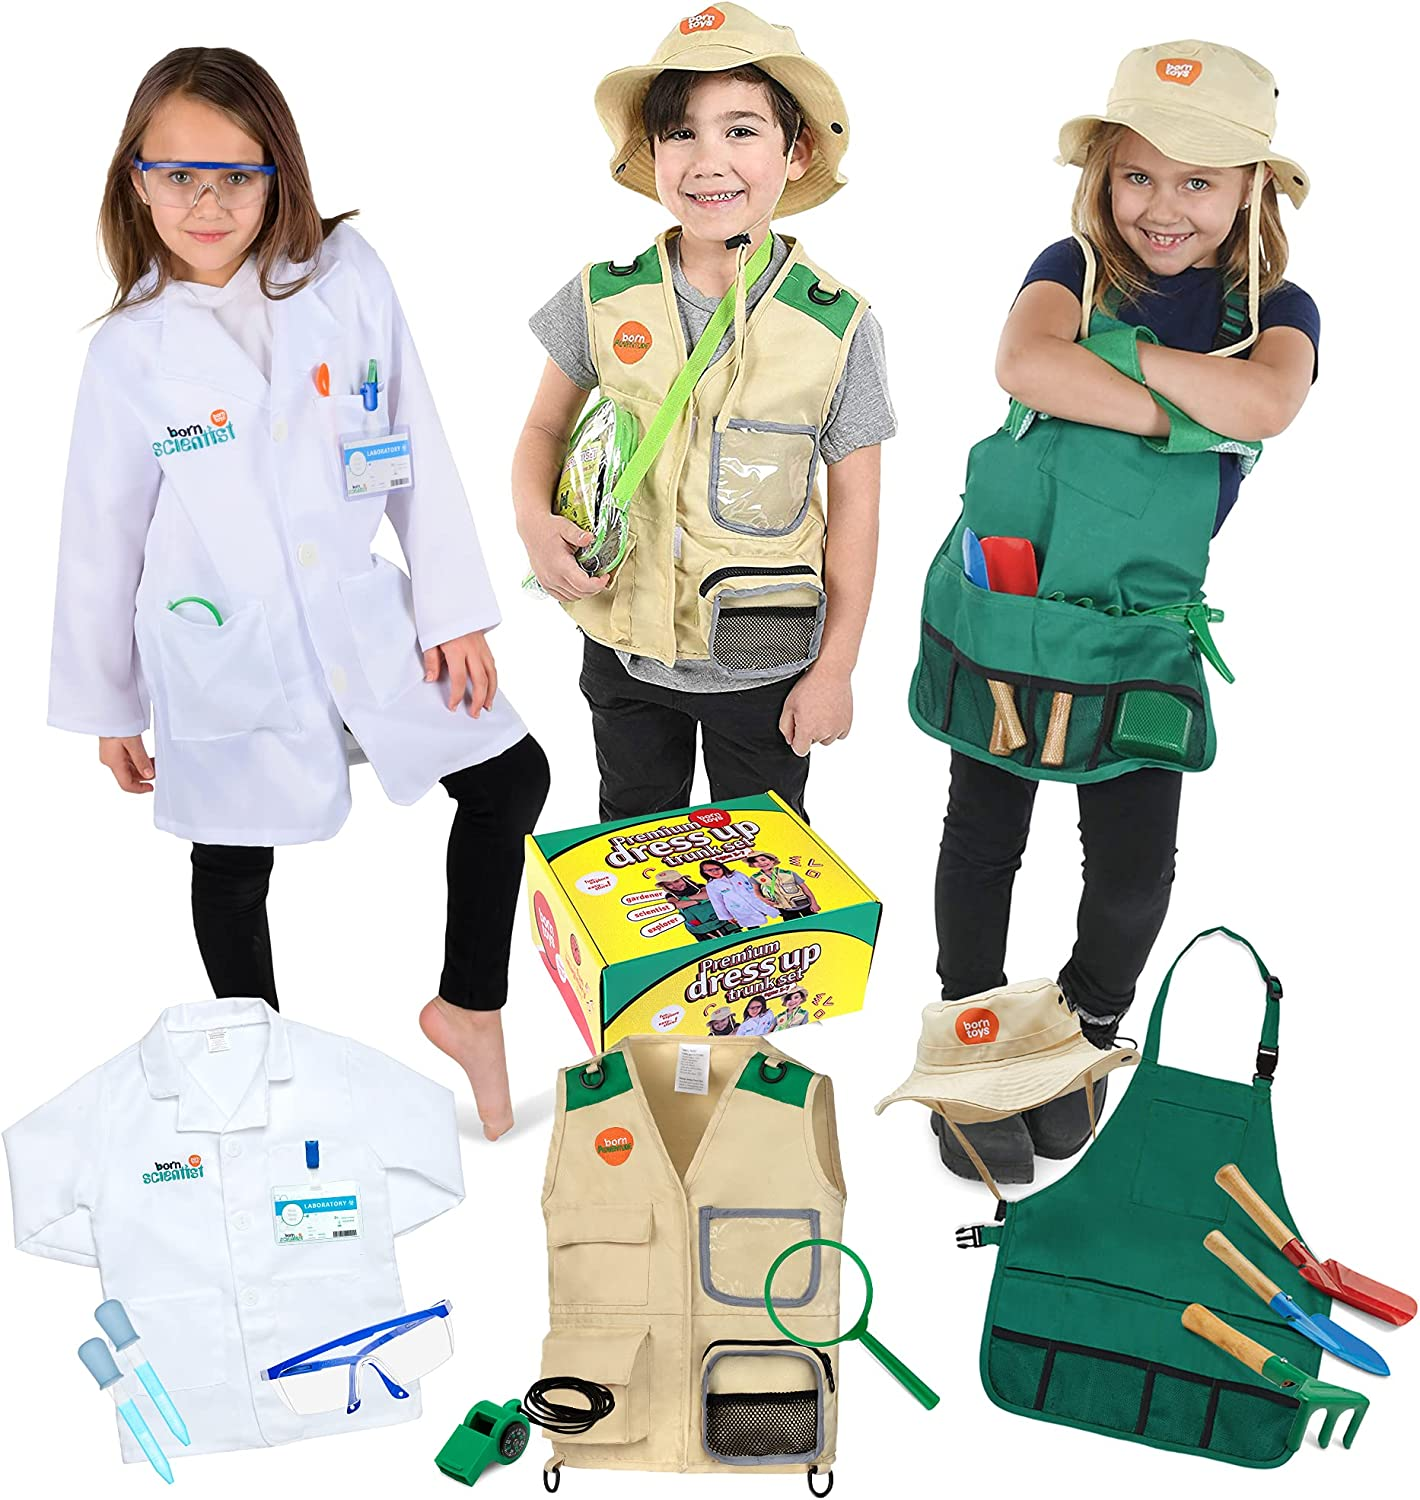 Max 76% OFF Born Toys Dress Up Pretend Play service Premium Kids S 3-in-1 Costumes